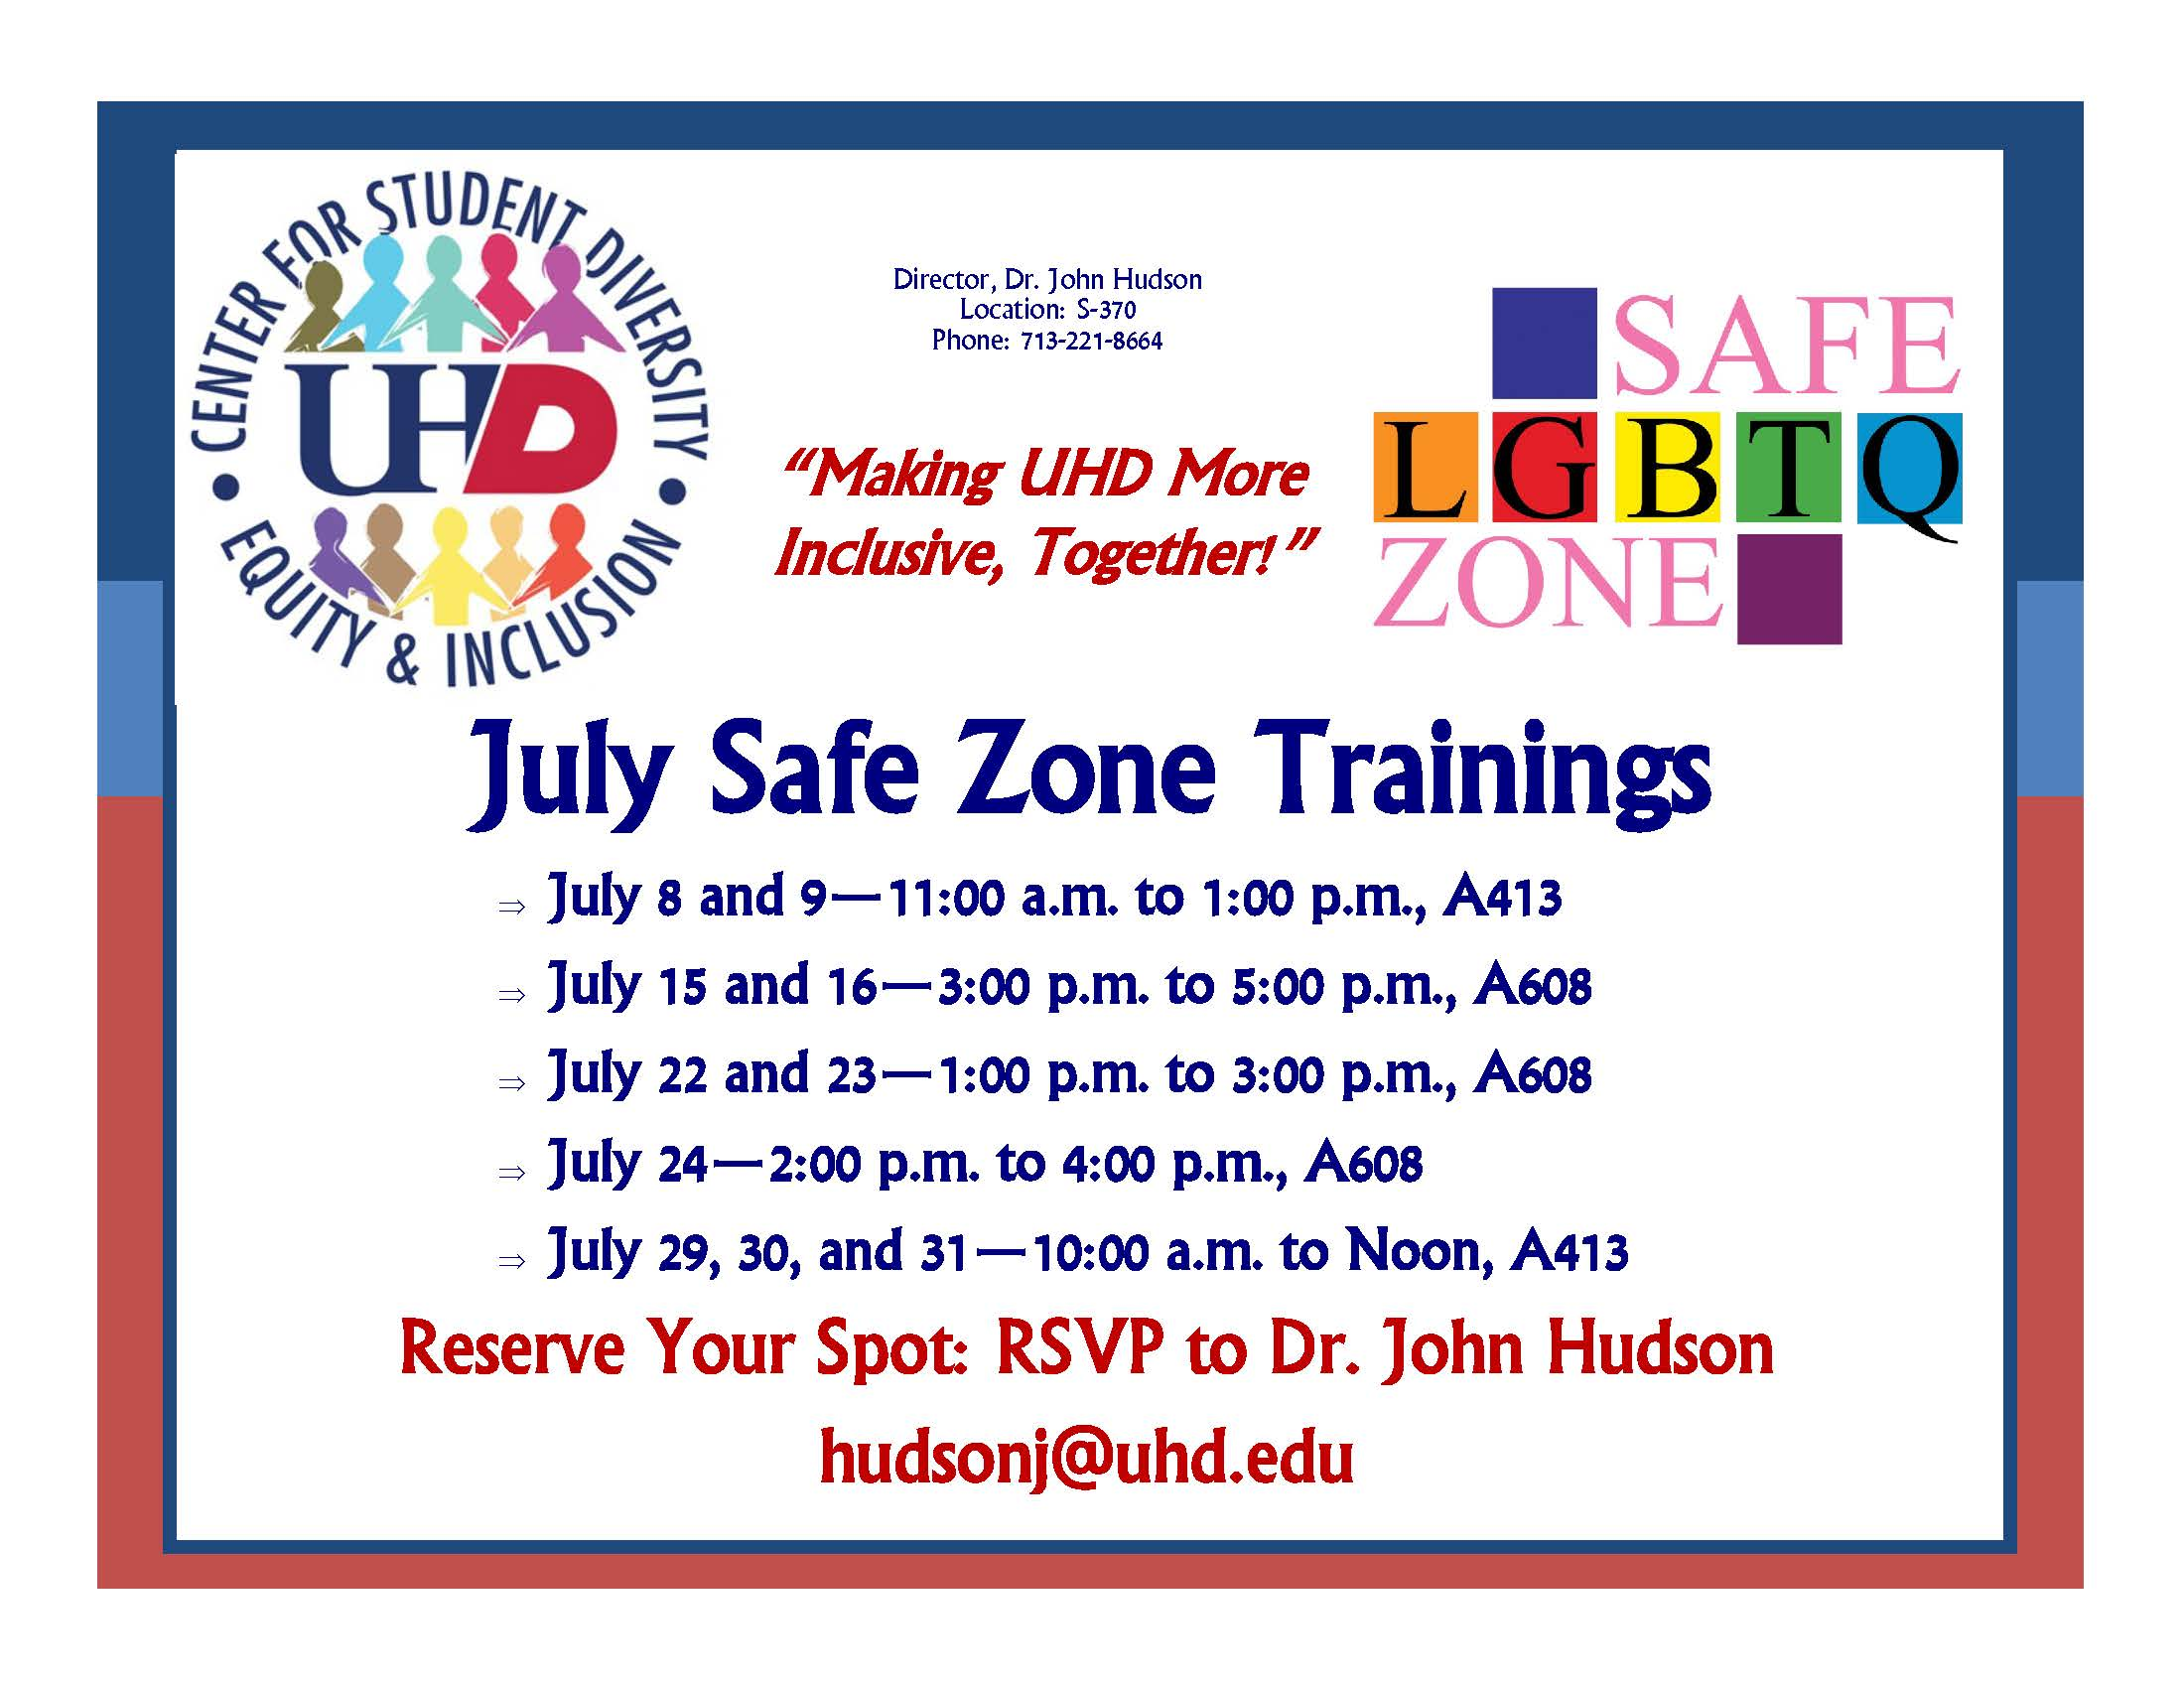 July Safe Zone Trainings  July 8 and 9—11:00 a.m. to 1:00 p.m., A413  July 15 and 16—3:00 p.m. to 5:00 p.m., A608  July 22 and 23—1:00 p.m. to 3:00 p.m., A608  July 24—2:00 p.m. to 4:00 p.m., A608  July 29, 30, and 31—10:00 a.m. to Noon, A413